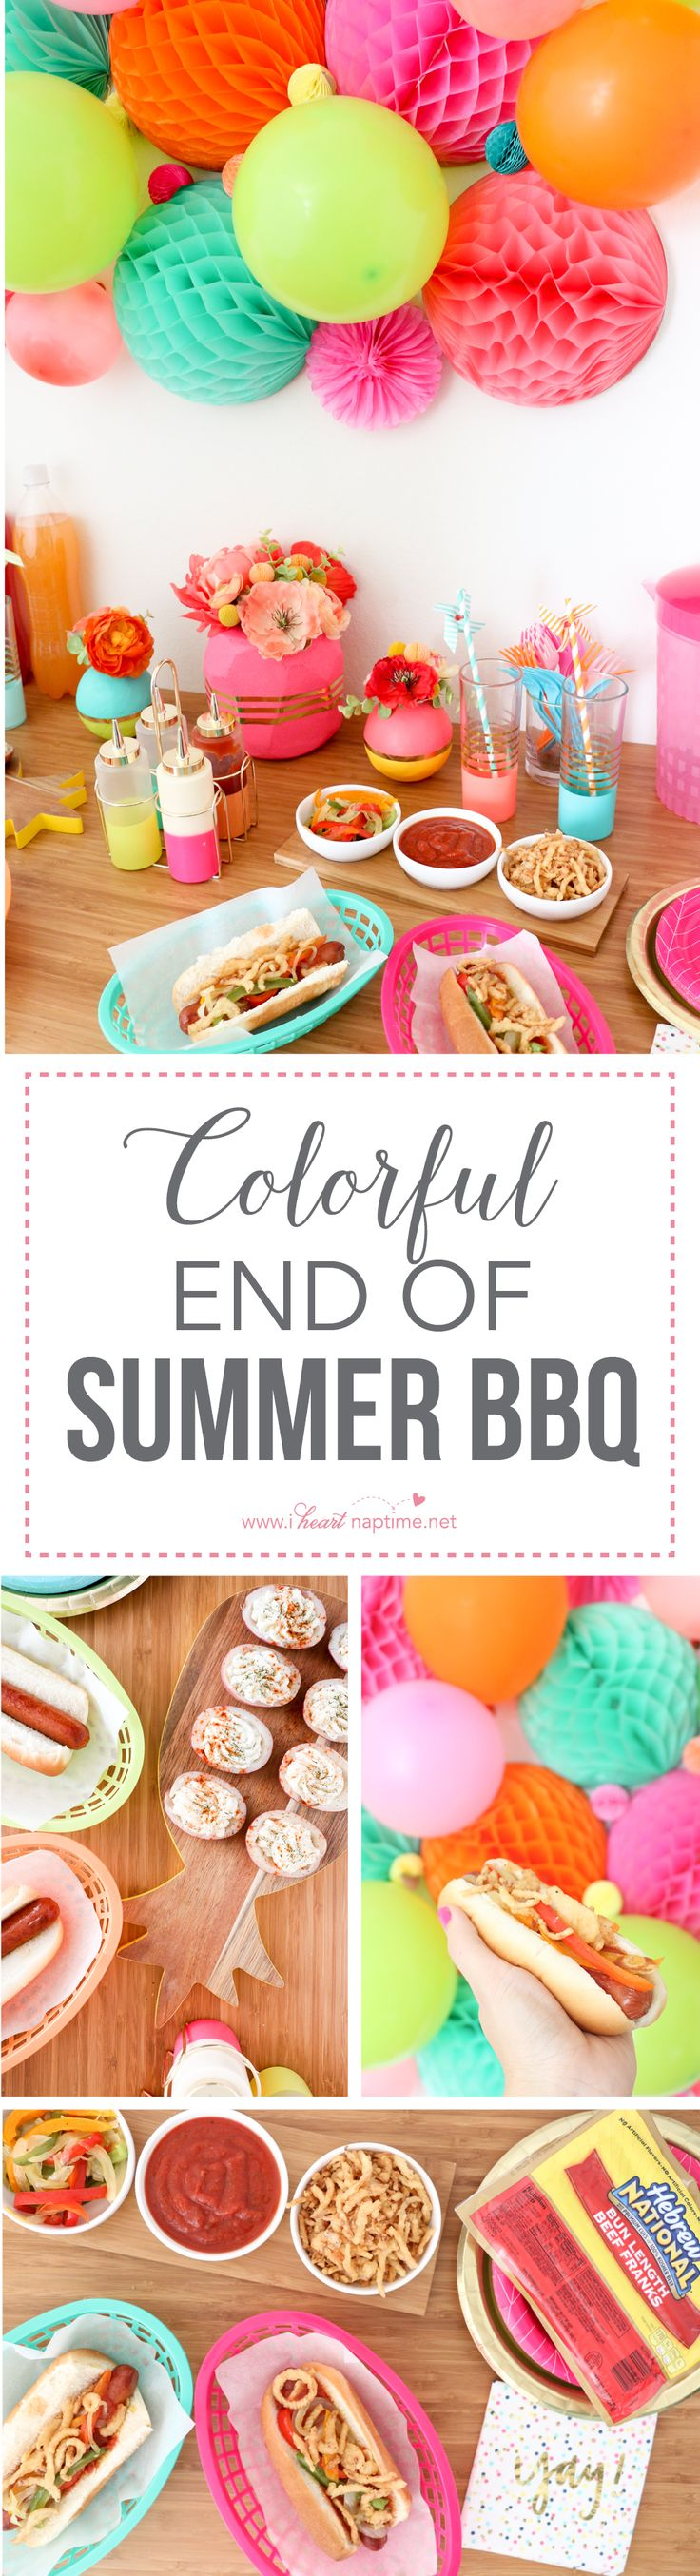 Colorful End of Summer BBQ... throw one last party complete with peperonata hot dogs and individual potato salad bites. Partnered with #HebrewNational #ad